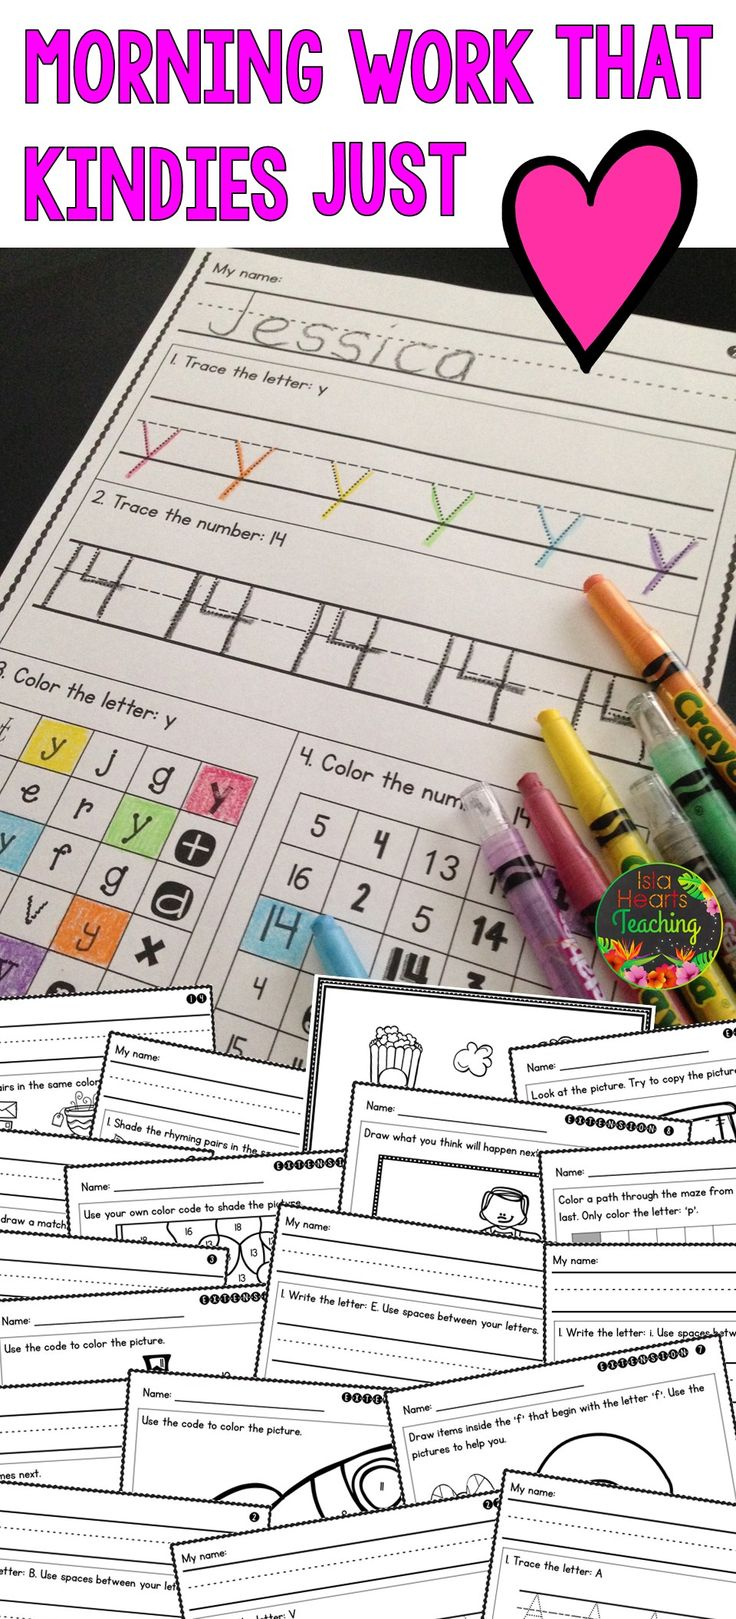 21039 best Great school ideas! images on Pinterest | Teaching ideas ...